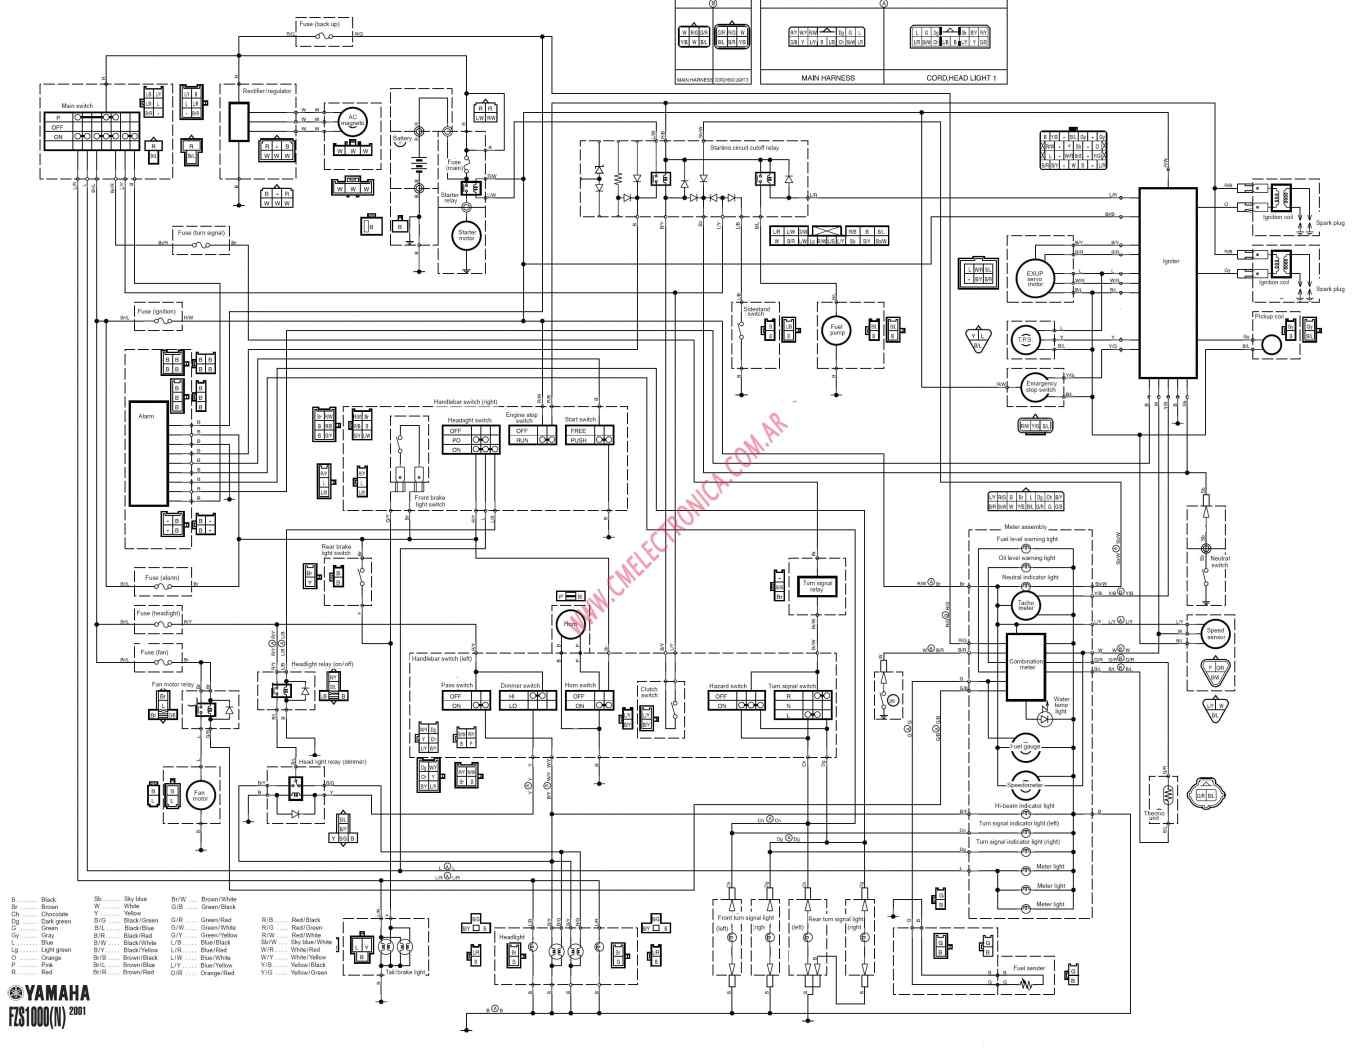 fxdwg dash switch wiring diagram - auto electrical wiring diagram on  1980 toyota wiring diagram,